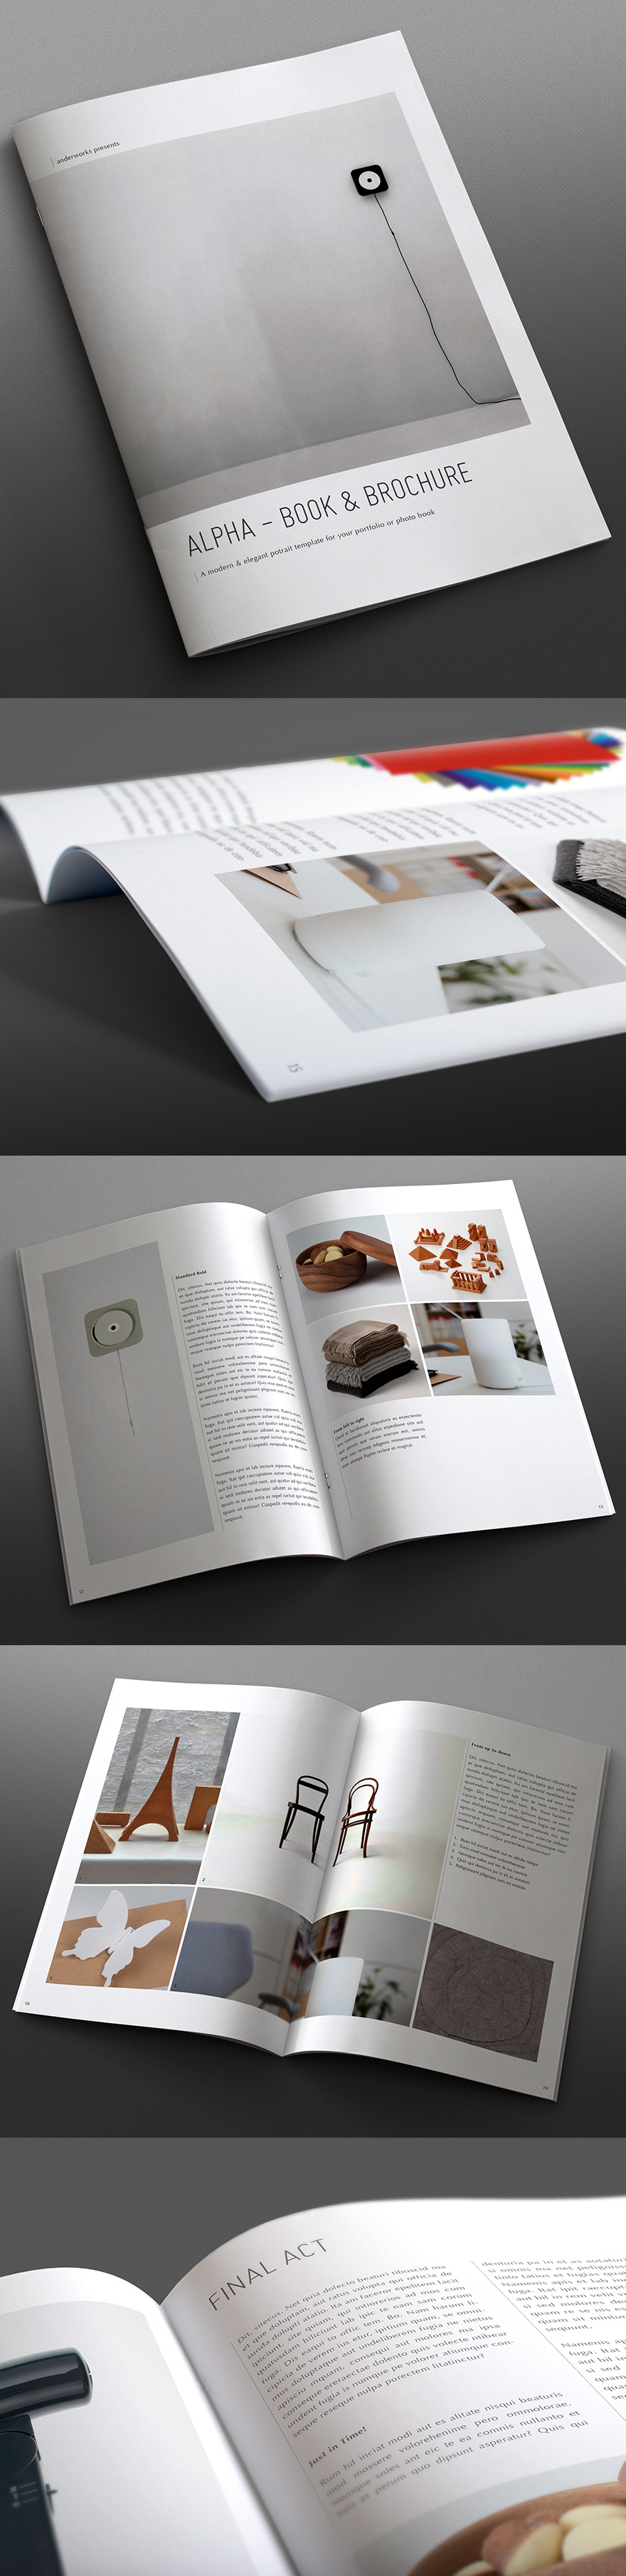 Alpha Series Book Amp Brochure Template Portrait By Andersdenkend Via Creattica Publishing Design Editorial Design Layout Book Editorial Design